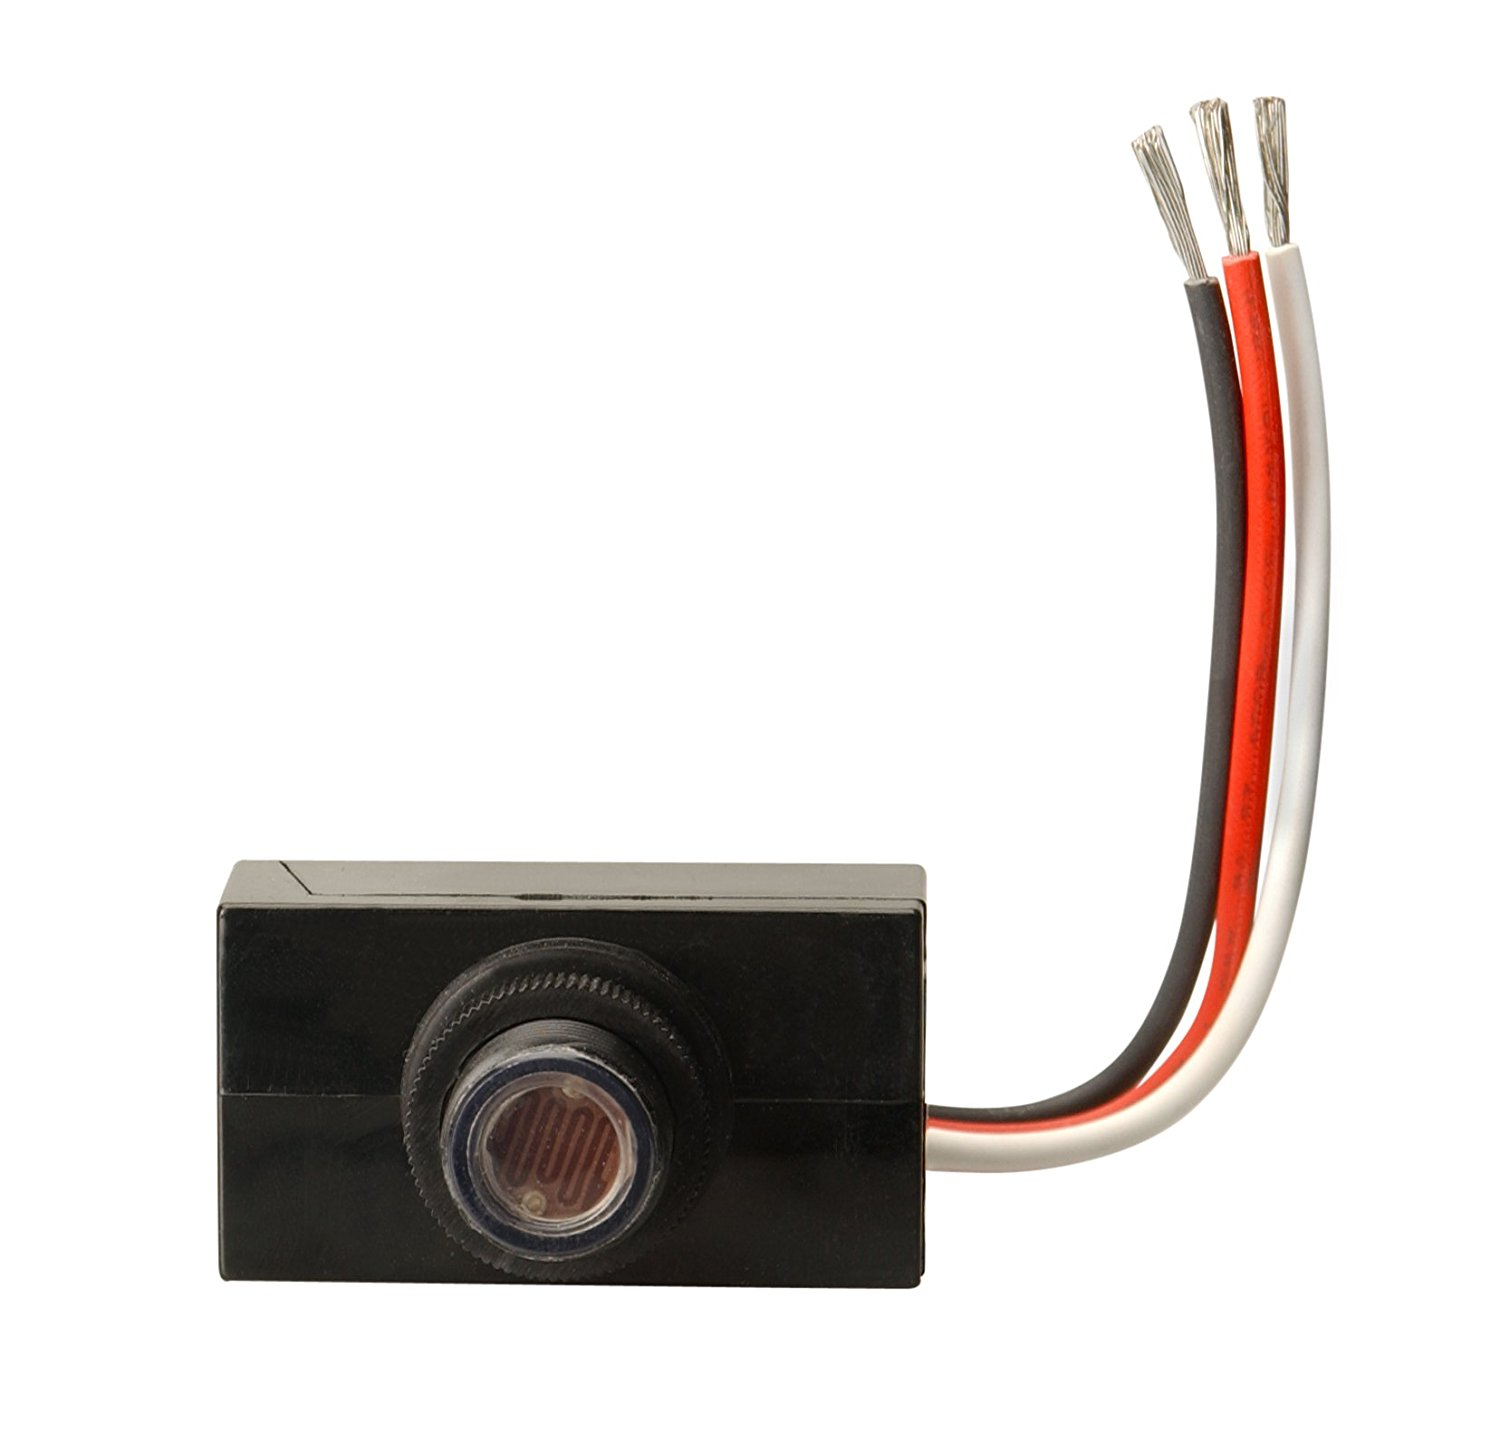 Woods 59408 outdoor hardwire post eye light control with photocell main image workwithnaturefo